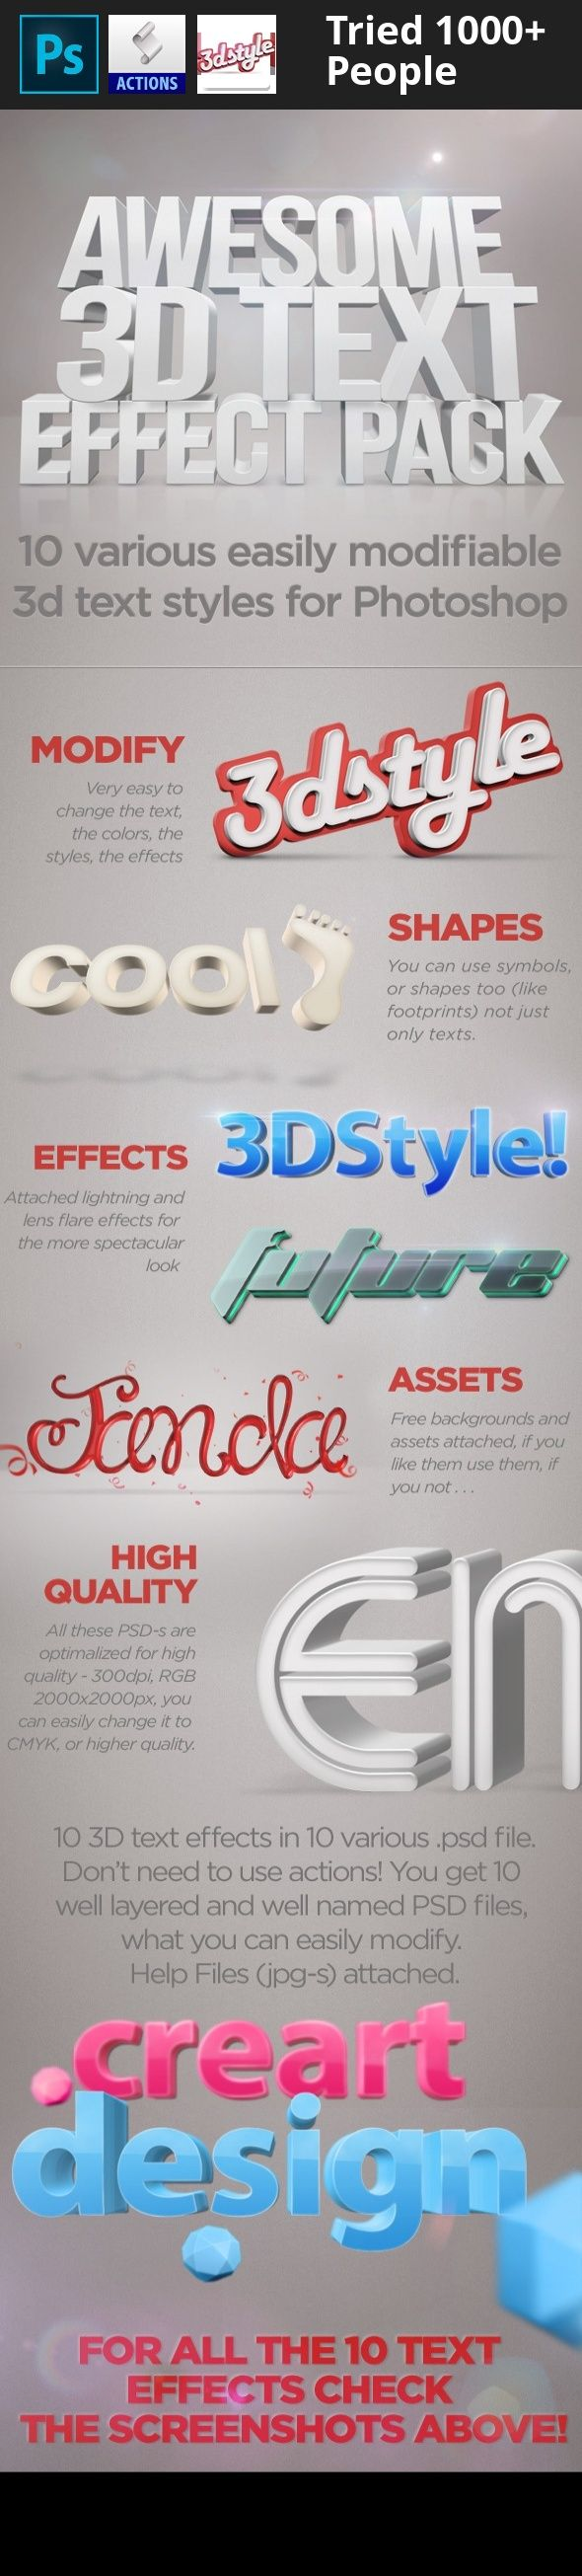 3d, 3d effect, 3d text style, colorful, creartdesign, depth, easy, envato, font, fx, grey, item, object, perspective, photoshop, realistic, red, screenshot, shadow, smart, style, text, text fx, text style, type, typography, wallpaper Watch our Video Presentation Video Presentation 3d Text Effects For Photoshop Put your text realistic and glamorize it with this 3D font style pack! This pack contains 10 different, well-named, well layered PSD file, for all the 3D text styles to one each. In…